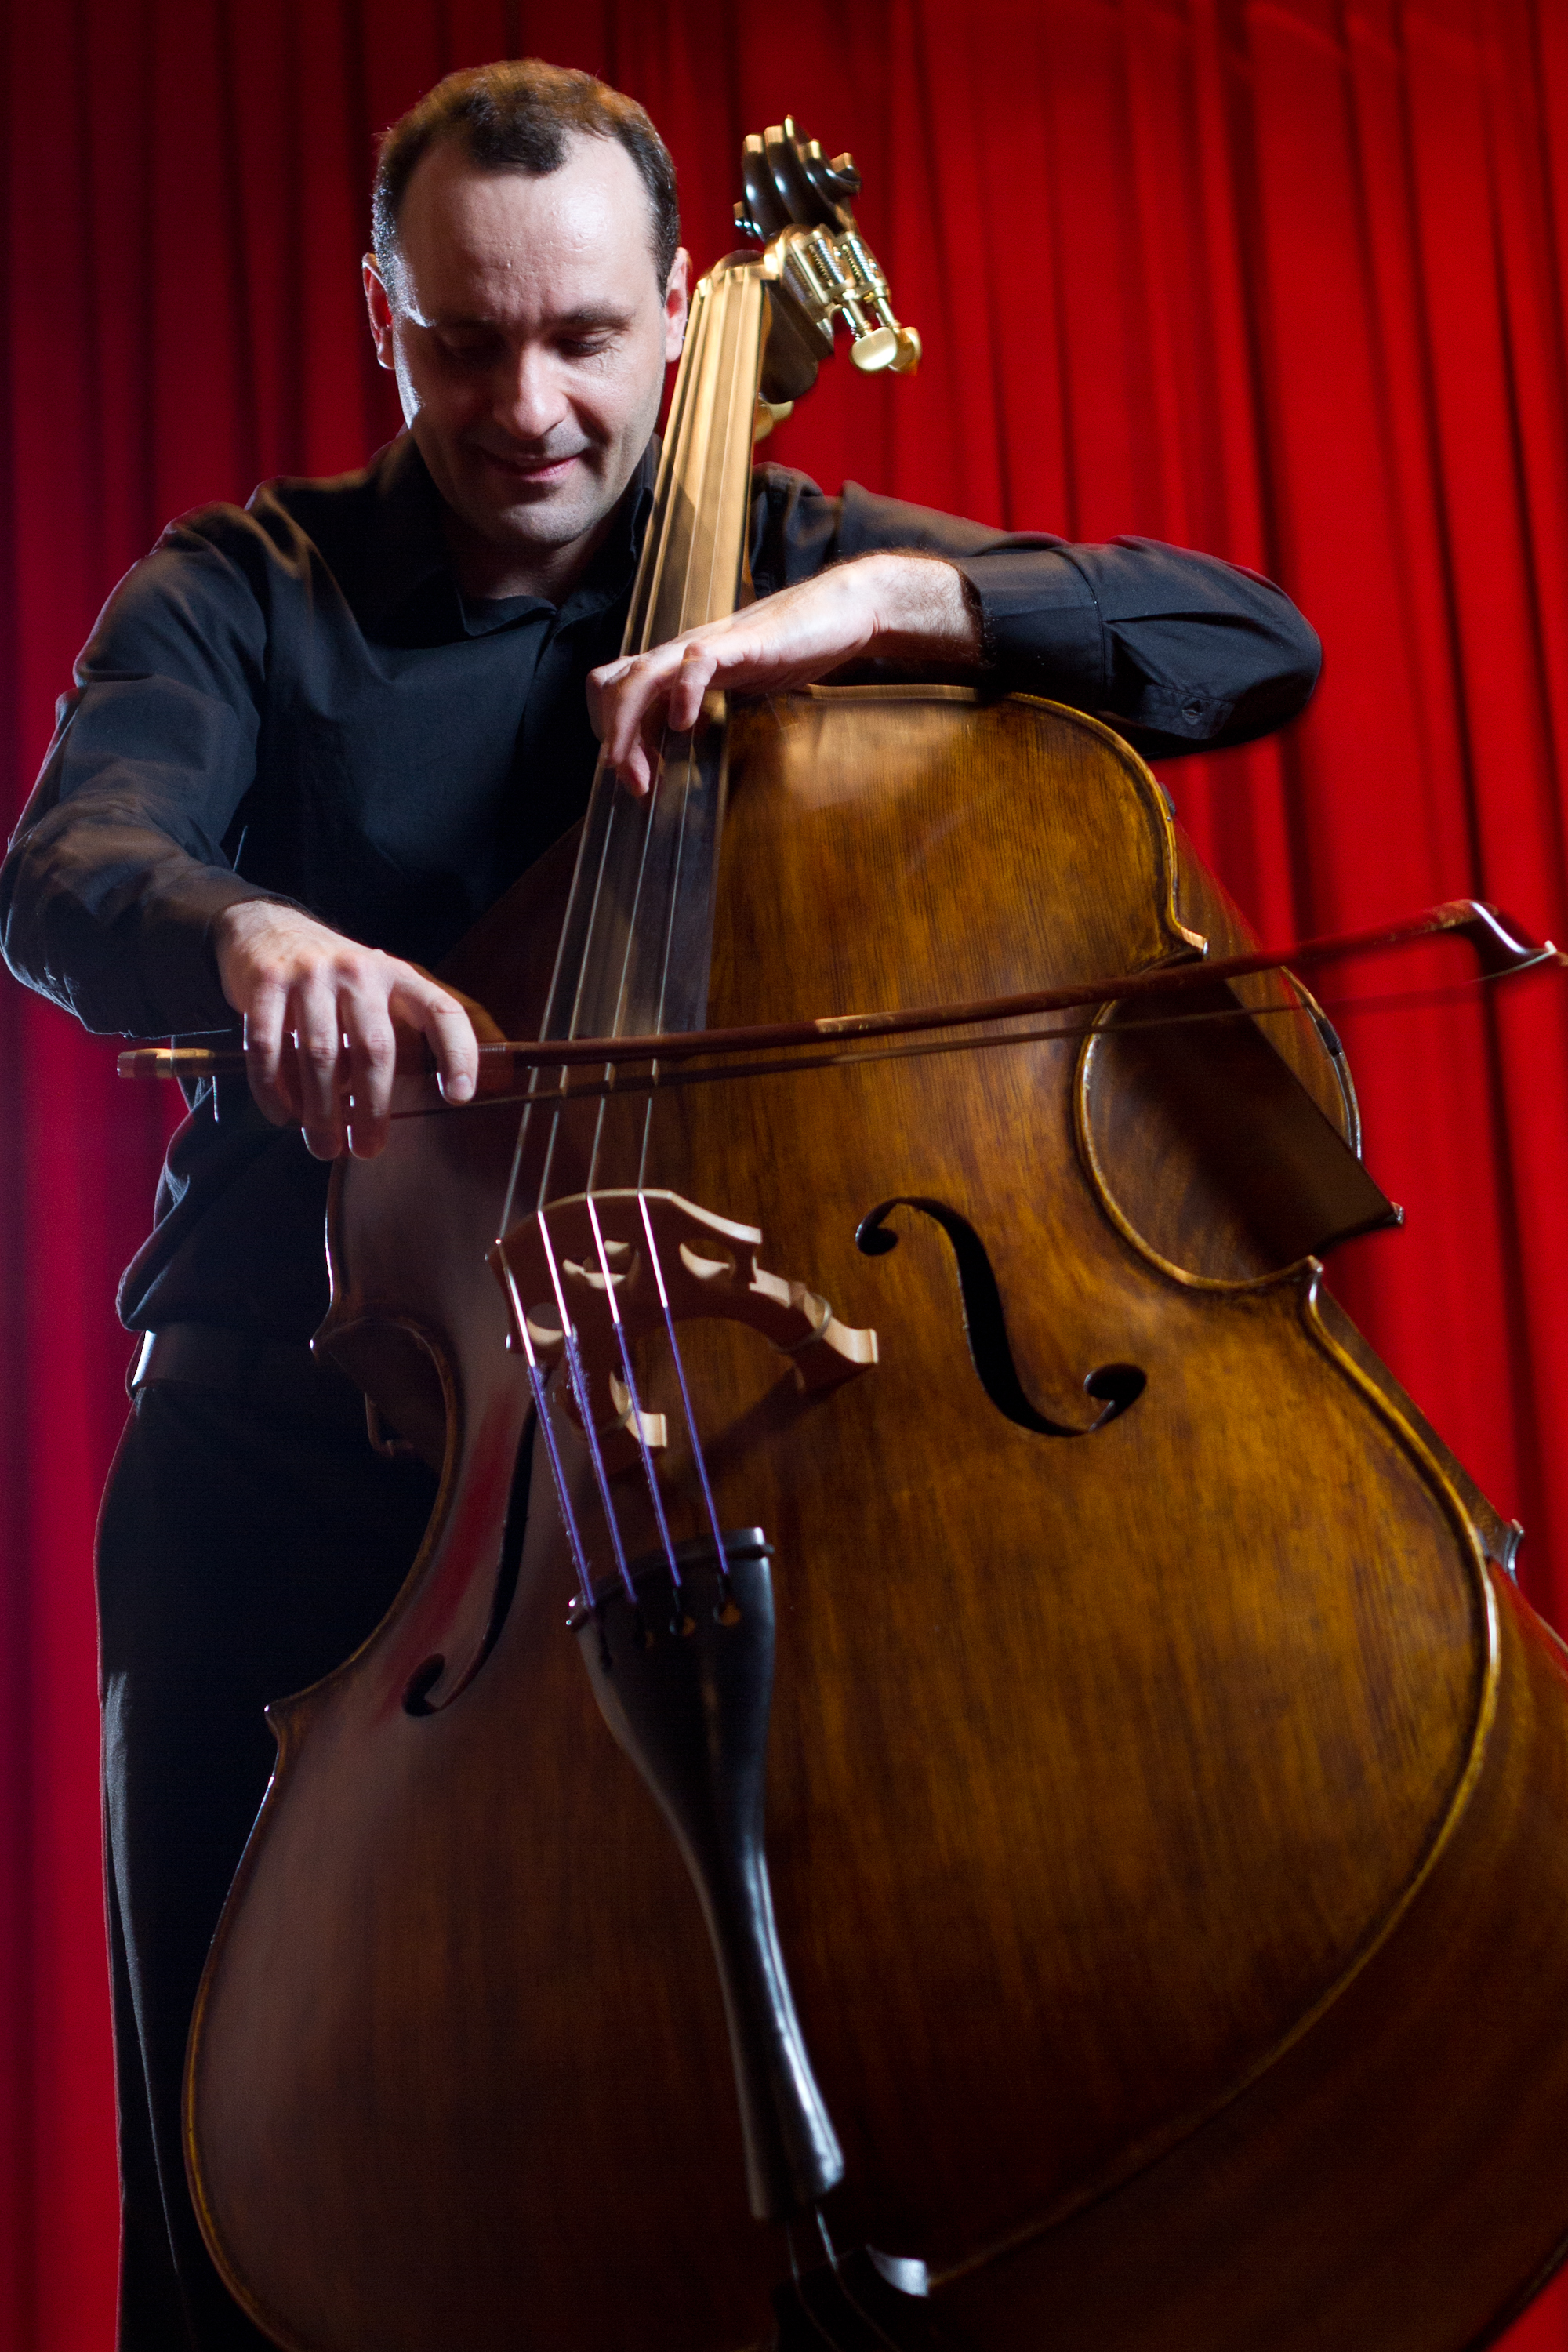 Alexandre plays a Double Bass named Albert Jackstad 2009 7/8 instrument numbered 103  Photographer:  Isaias Mattos - 2012